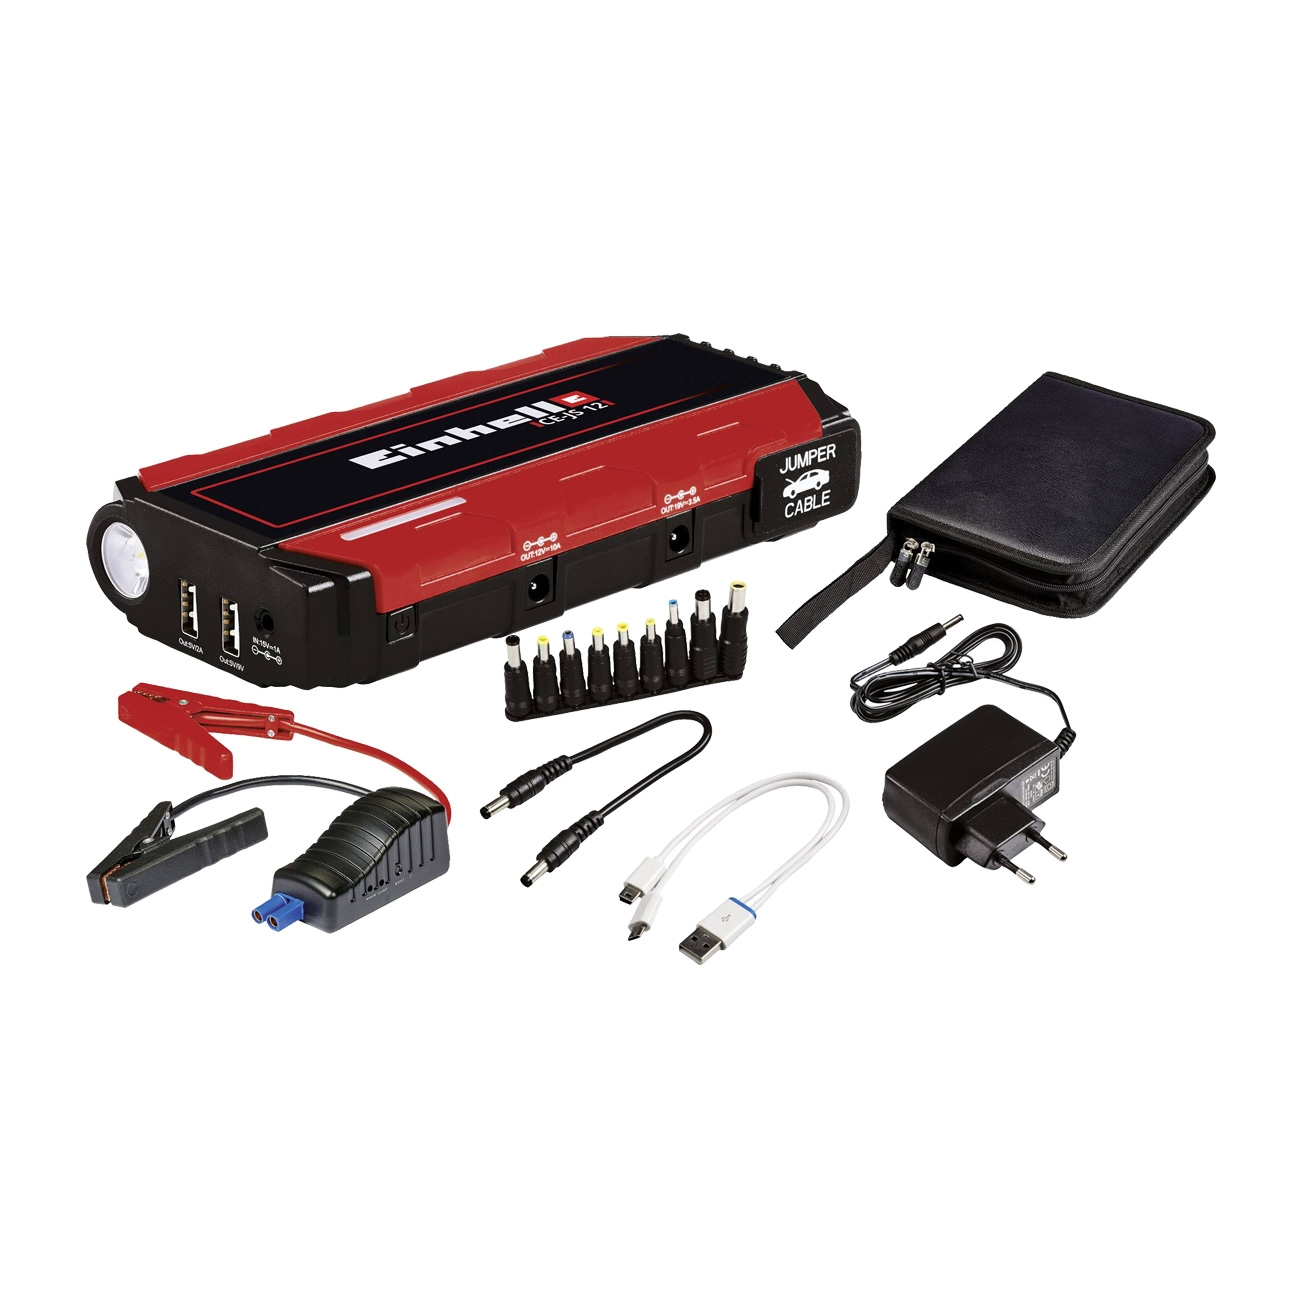 Image of Power bank Einhell CE-JS 18 Jump Start - Avviatore di emergenza auto